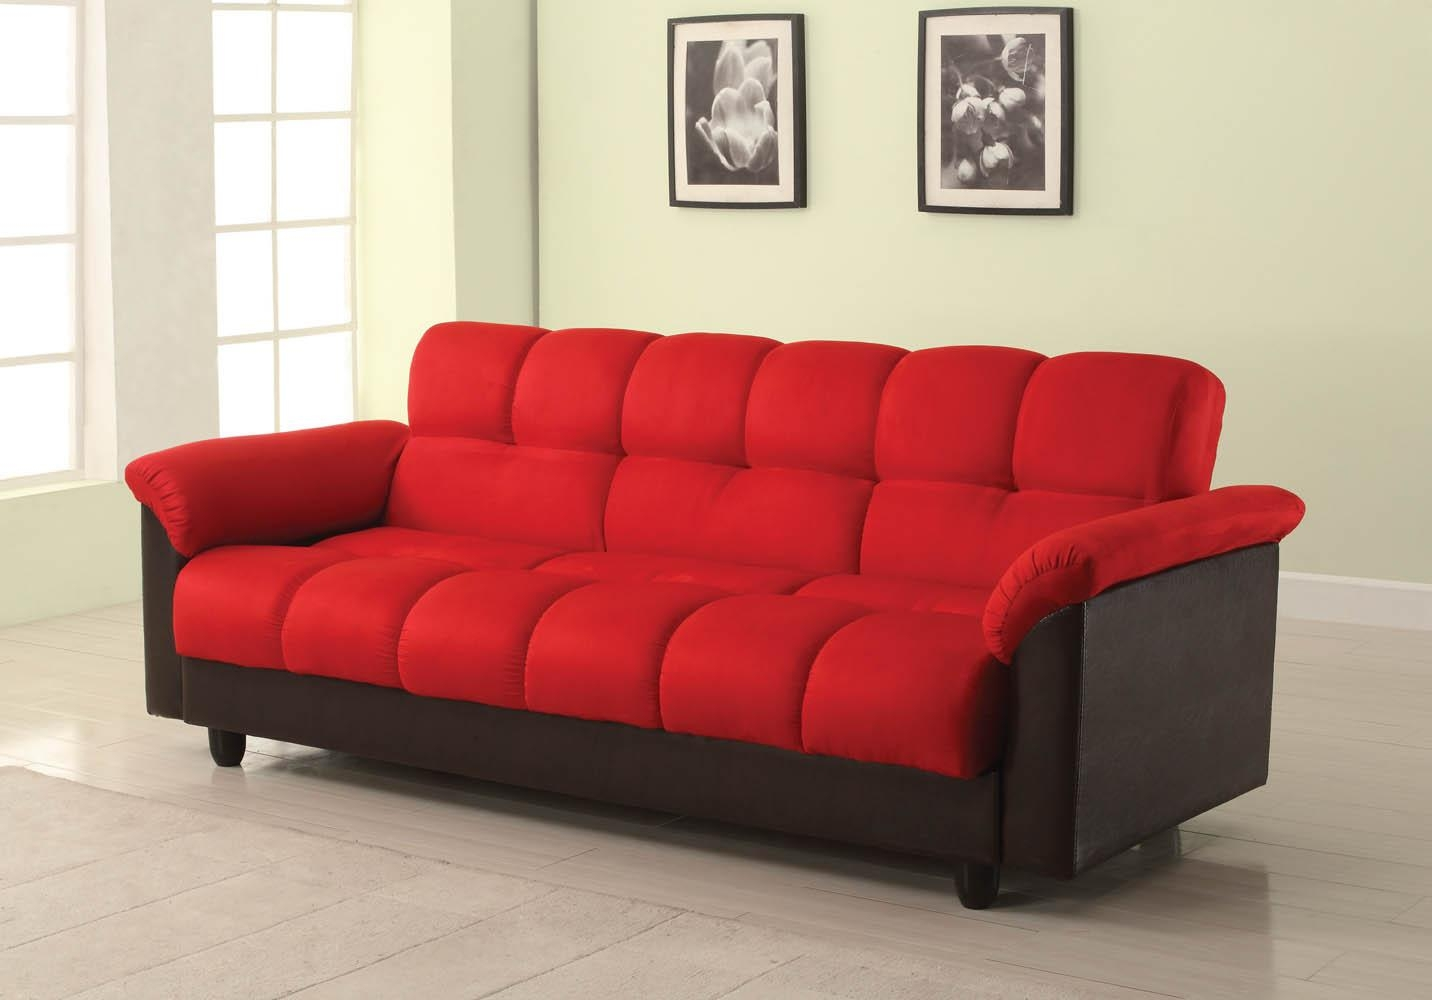 Red Furniture Ideas 20 Photos Sofa Red And Black Sofa Ideas